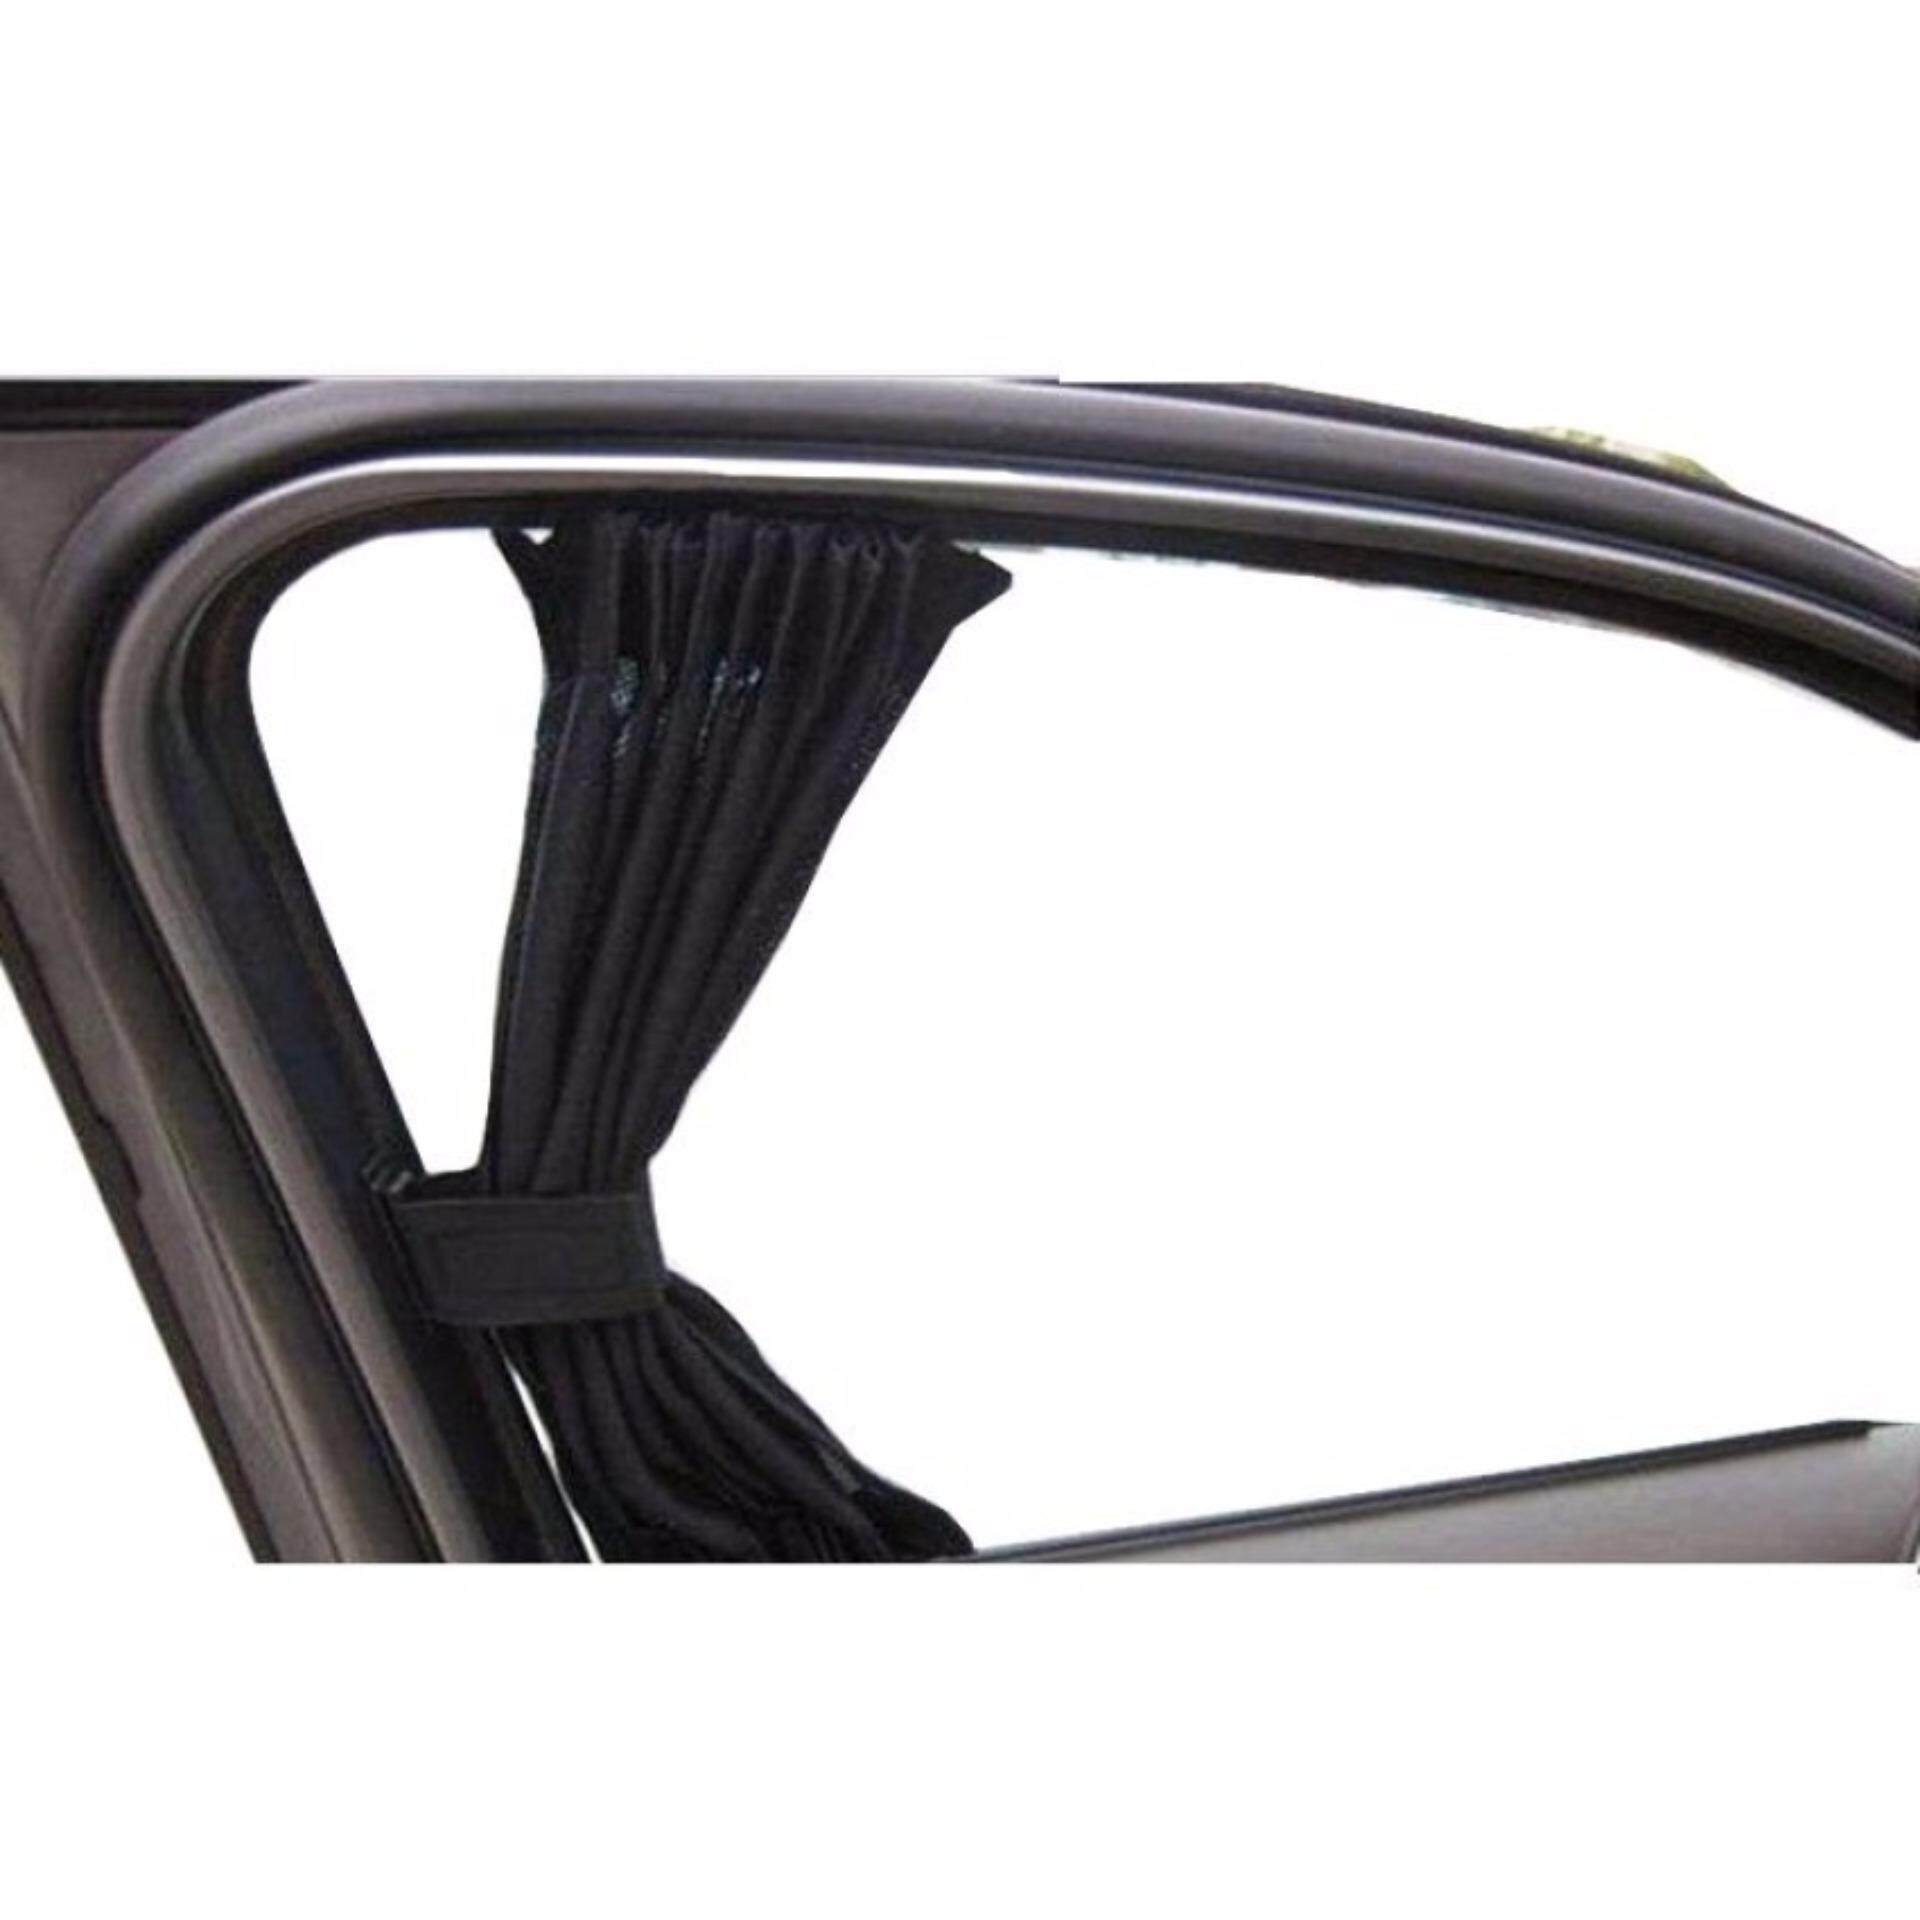 4 Windows 50cm S Size Car Side Window Curtain Blind Sun Shade Can See Through A Bit for Myvi Vios Persona Gen 2 Civic - Black